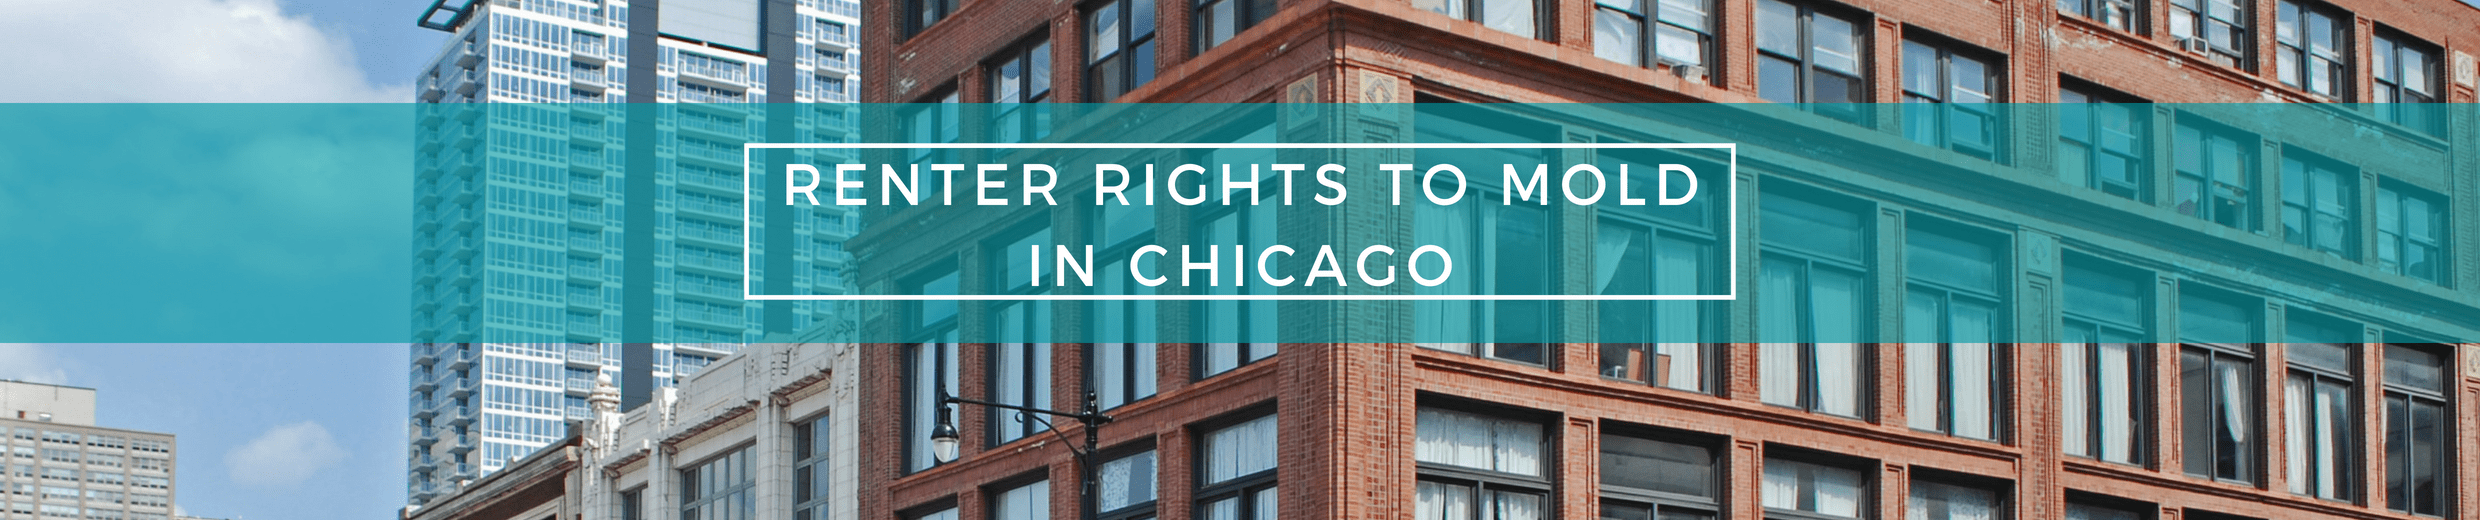 Renter's Rights to Mold in chicago